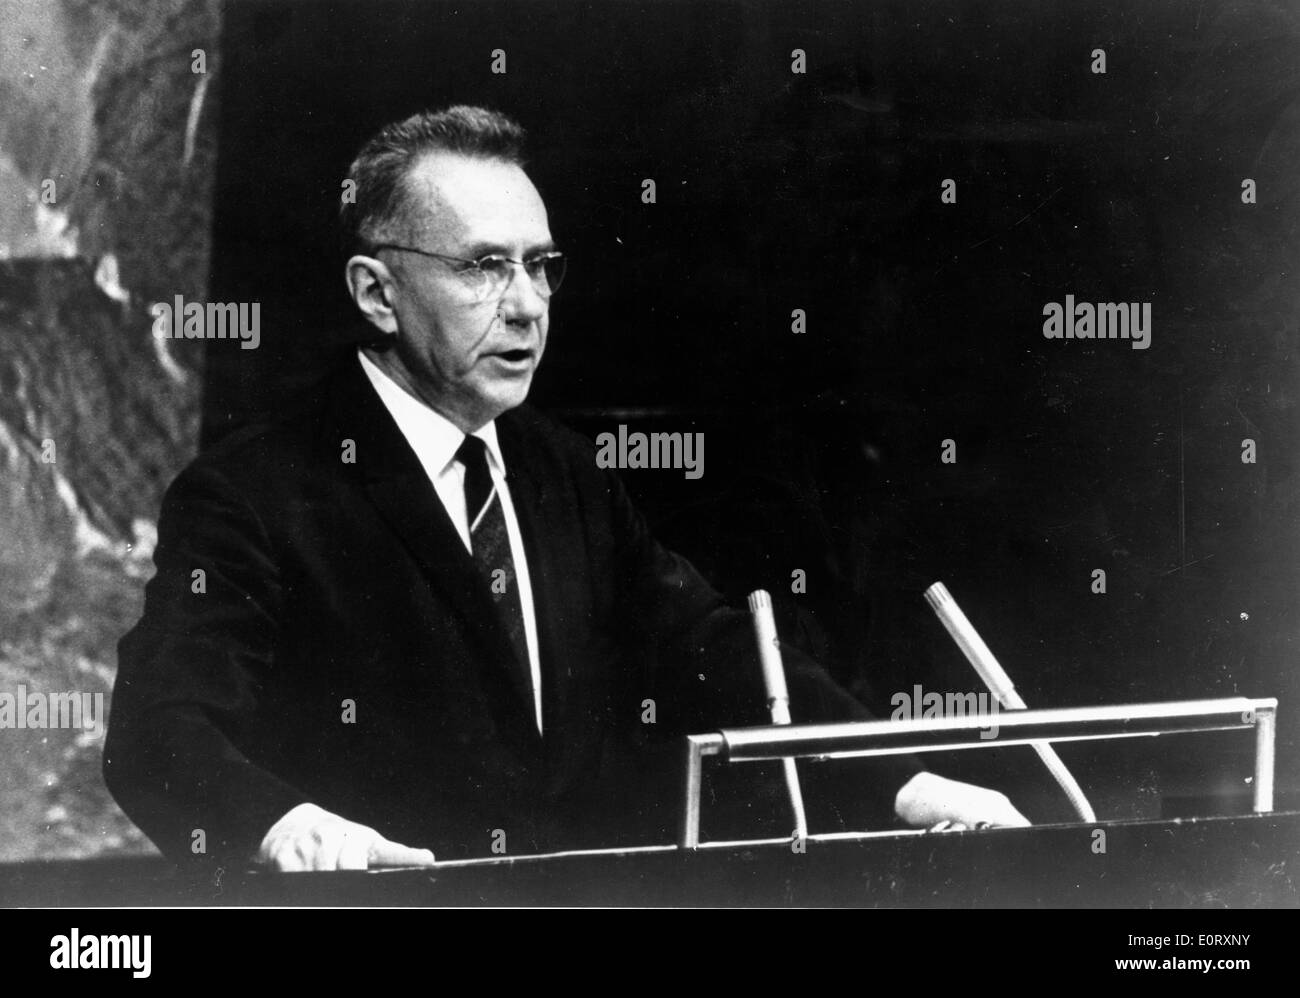 Alexei Kosygin speaks at UN General Assembly - Stock Image